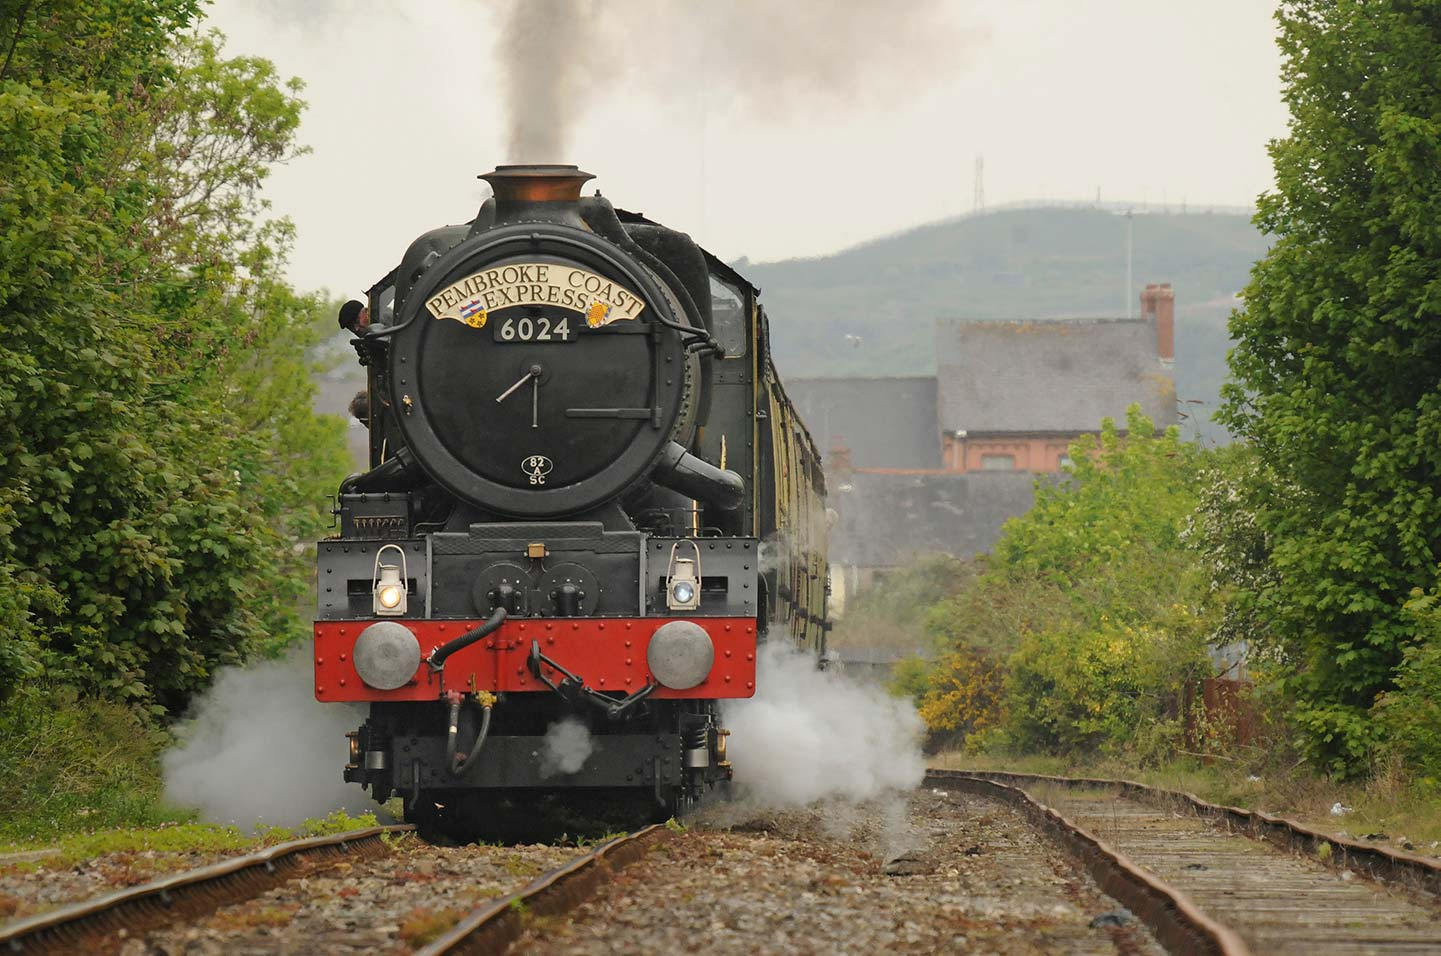 No. 6024 sets off from Pembroke Dock station, the first time any 'King' had been here, 1 May 2011. © Robin Coombes